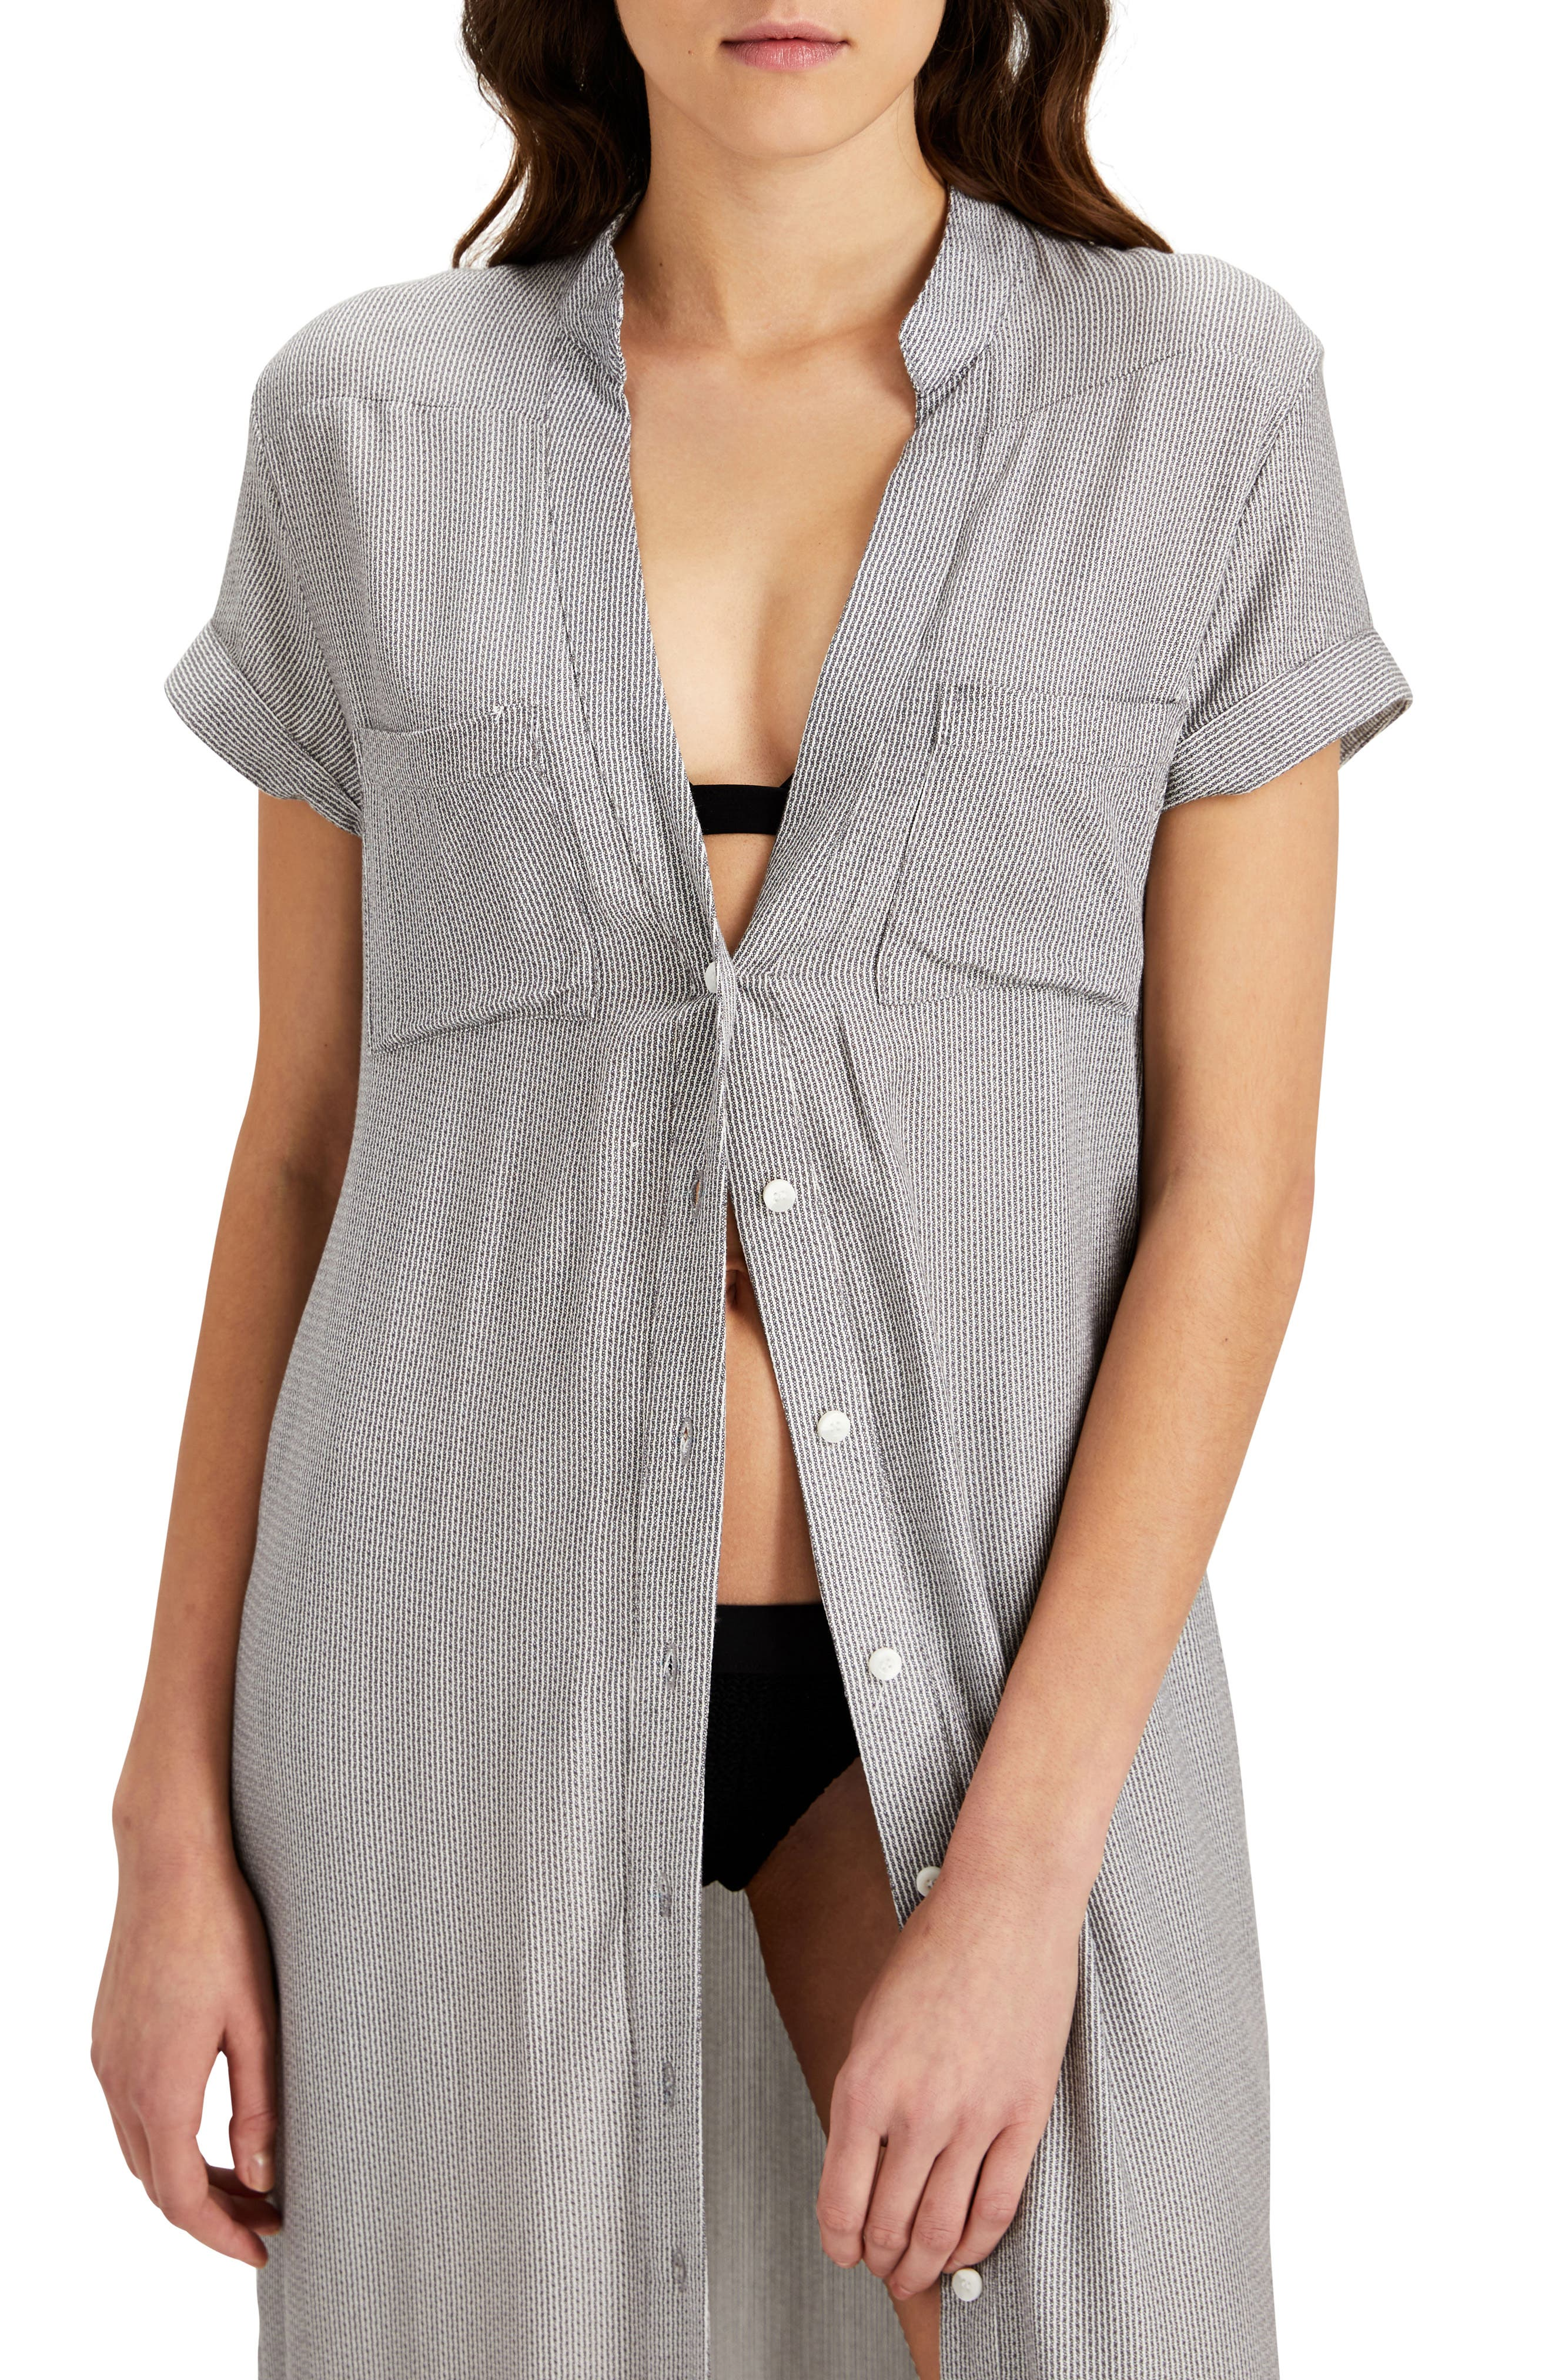 Kim Button Down Cover-Up Dress,                             Alternate thumbnail 3, color,                             Charcoal/ White